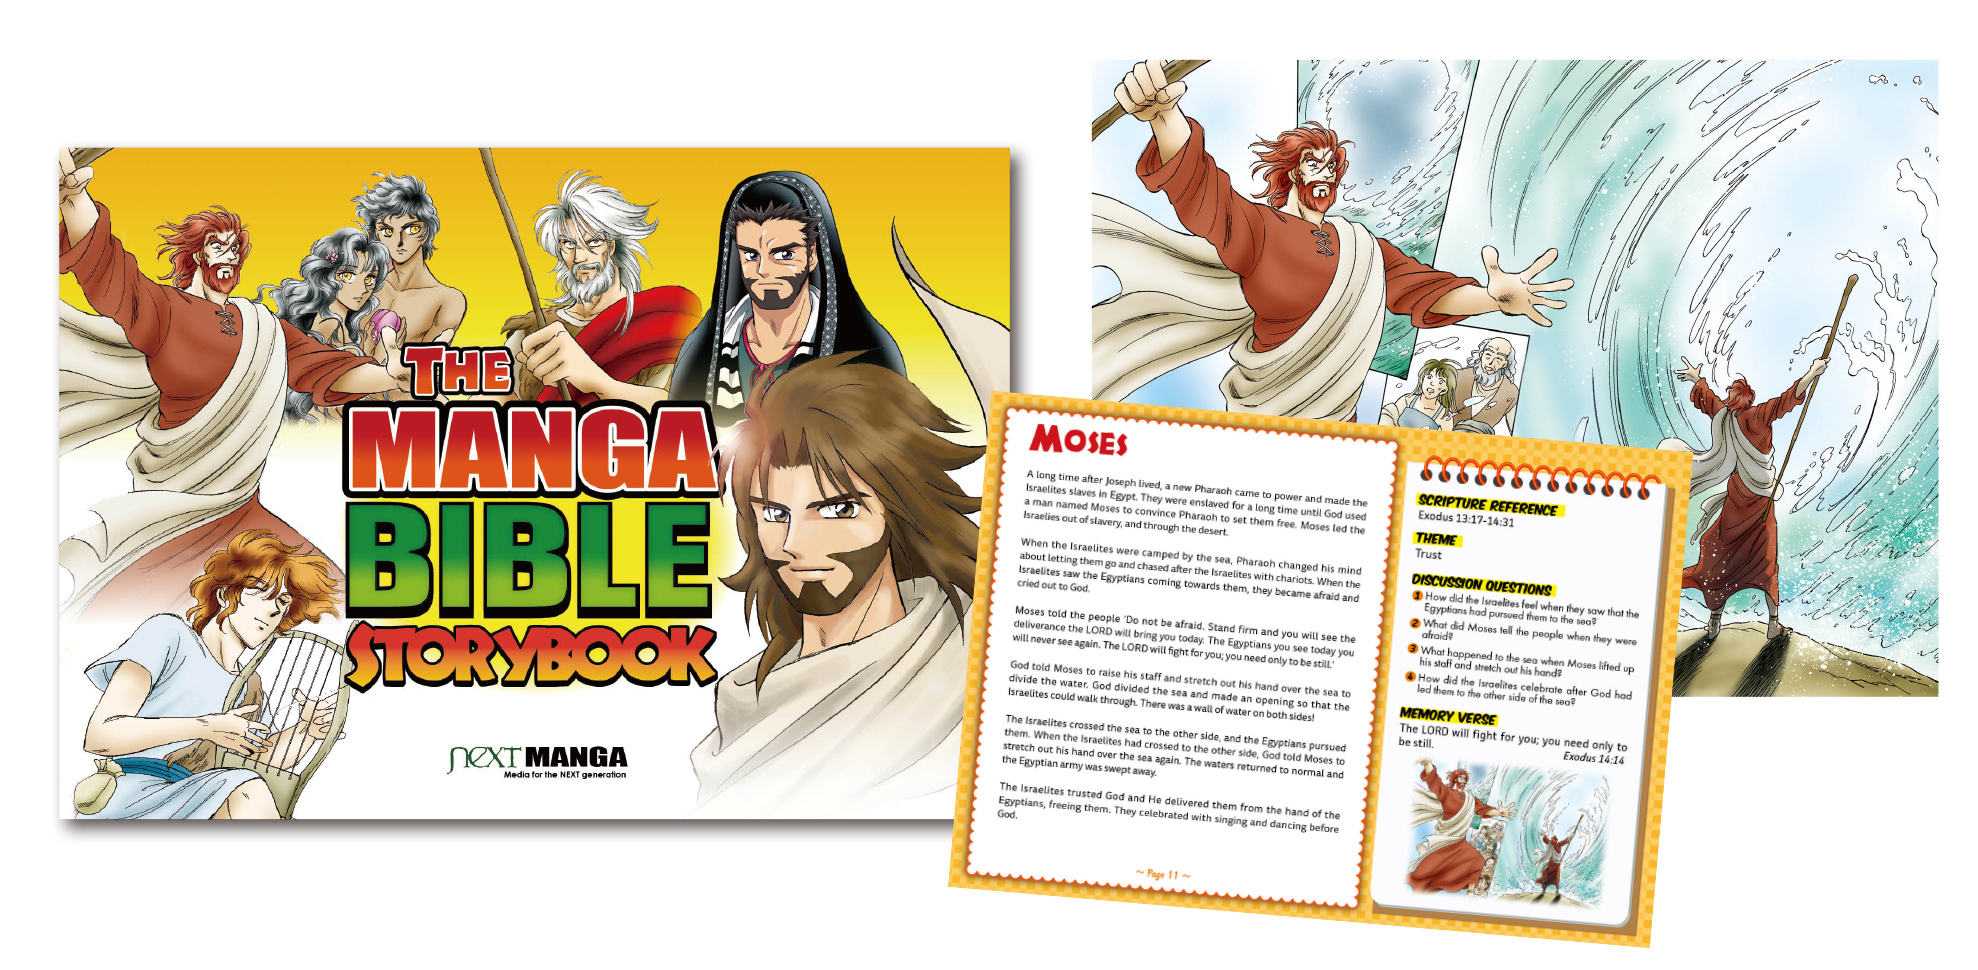 The Manga Bible Storybook